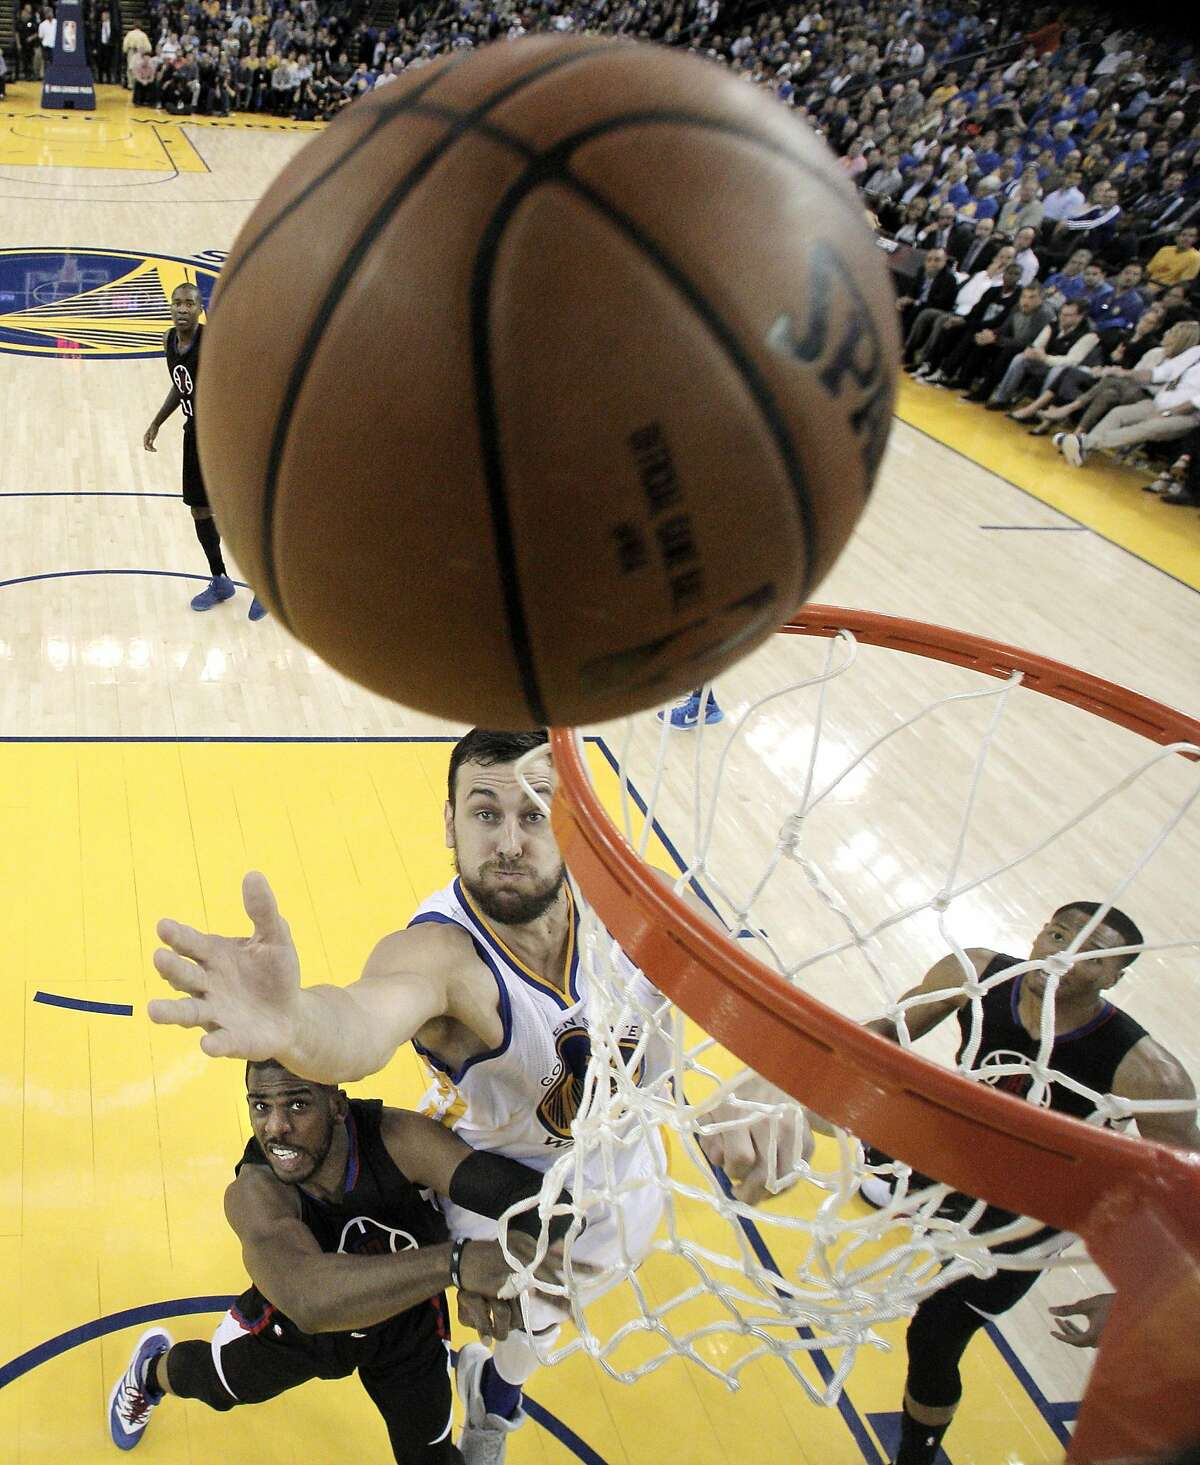 Chris Paul (3) tries to block out Andrew Bogut (12) from a rebound in the first half as the Golden State Warriors played the Los Angeles Clippers at Oracle Arena in Oakland, Calif., on Wednesday, March 23, 2016.